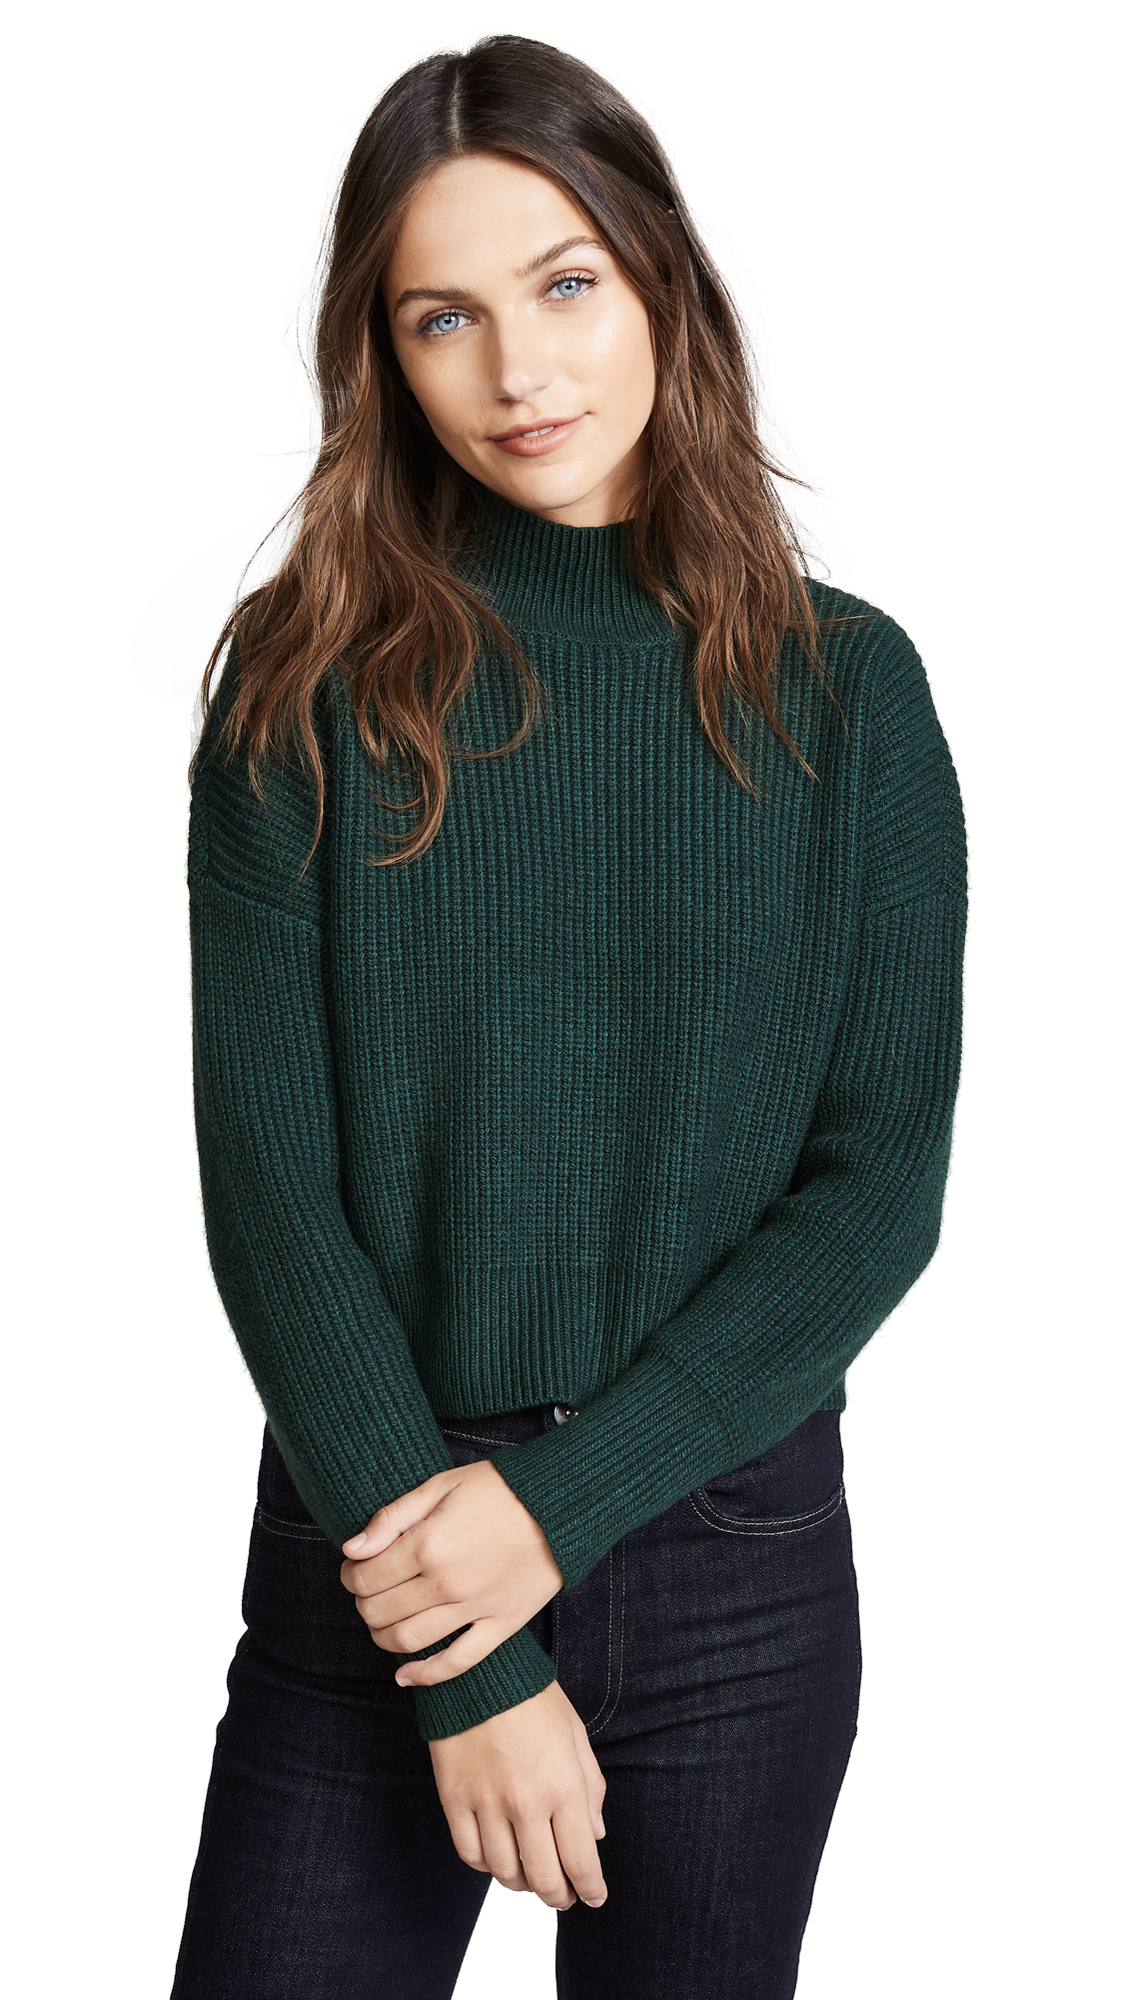 KNOT SISTERS Libby Sweater in Evergreen